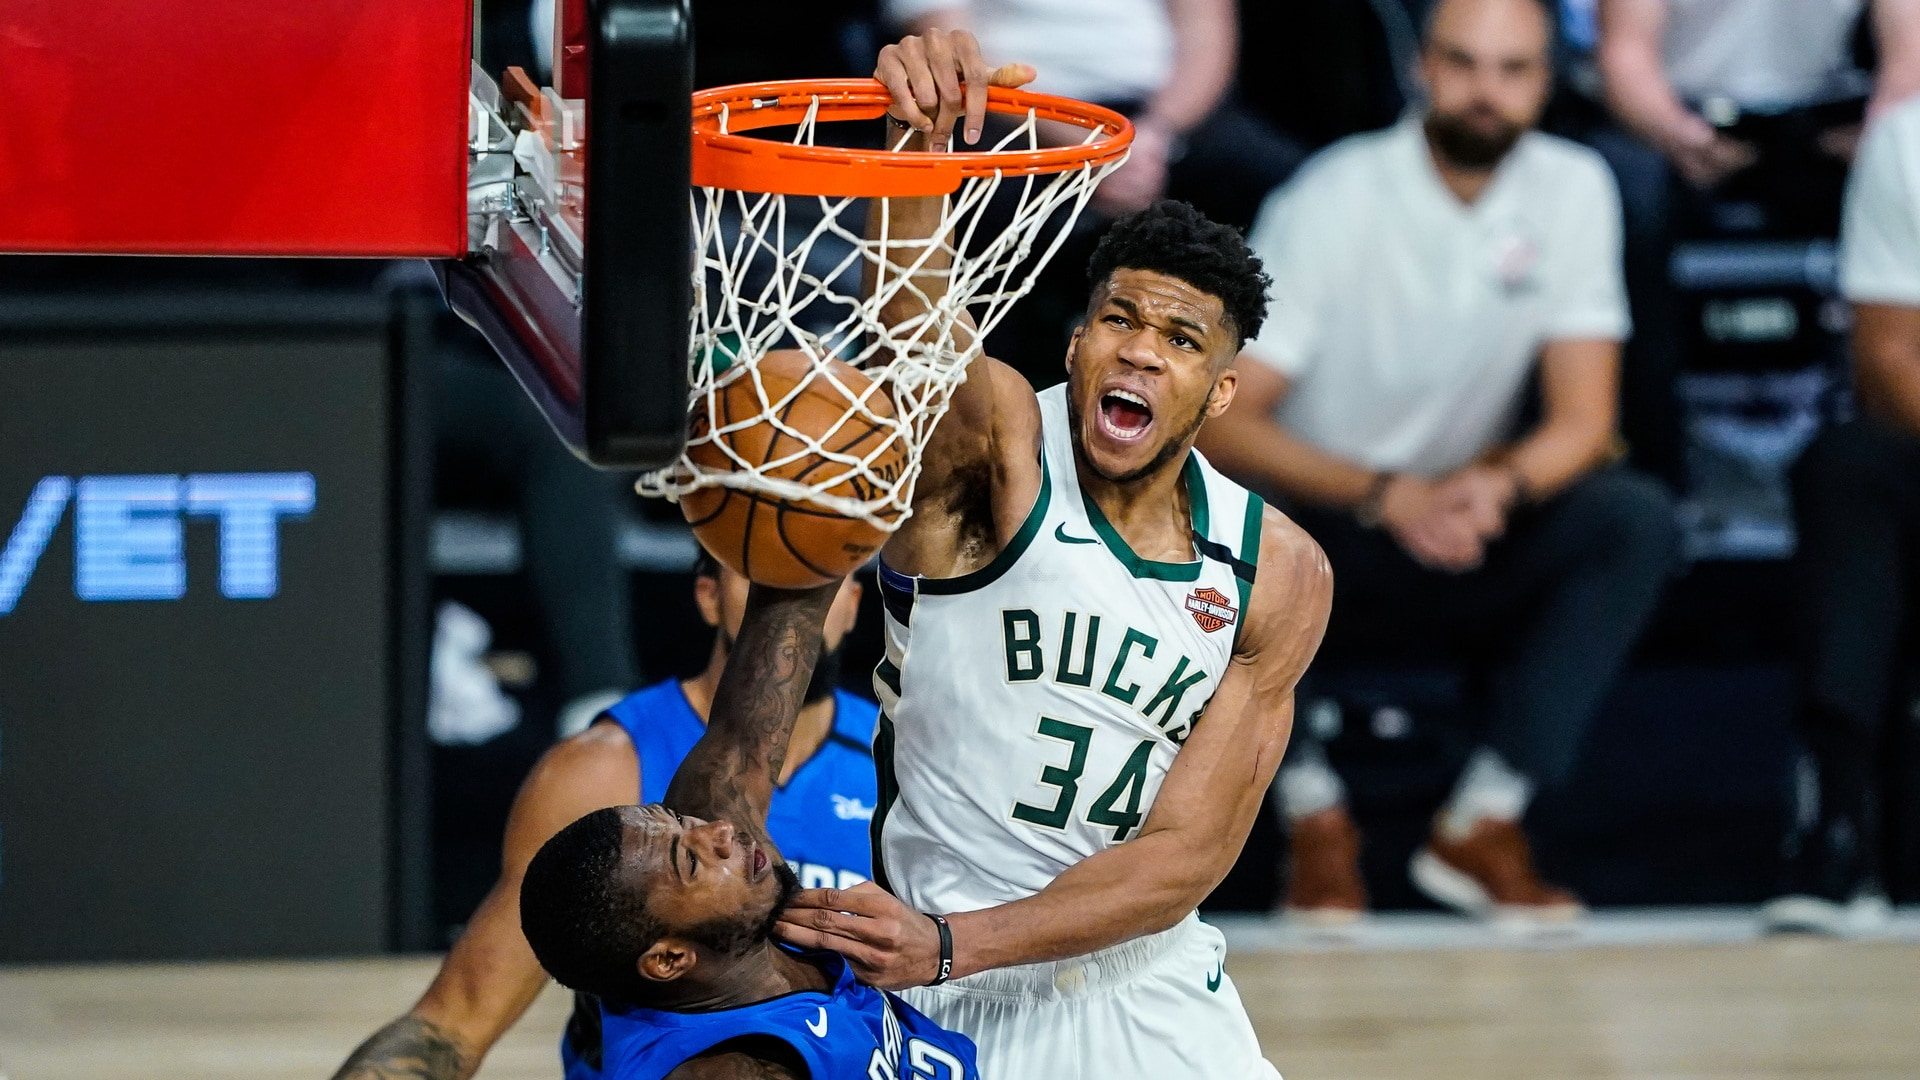 Giannis Antetokounmpo Top Five Plays of 2019-20